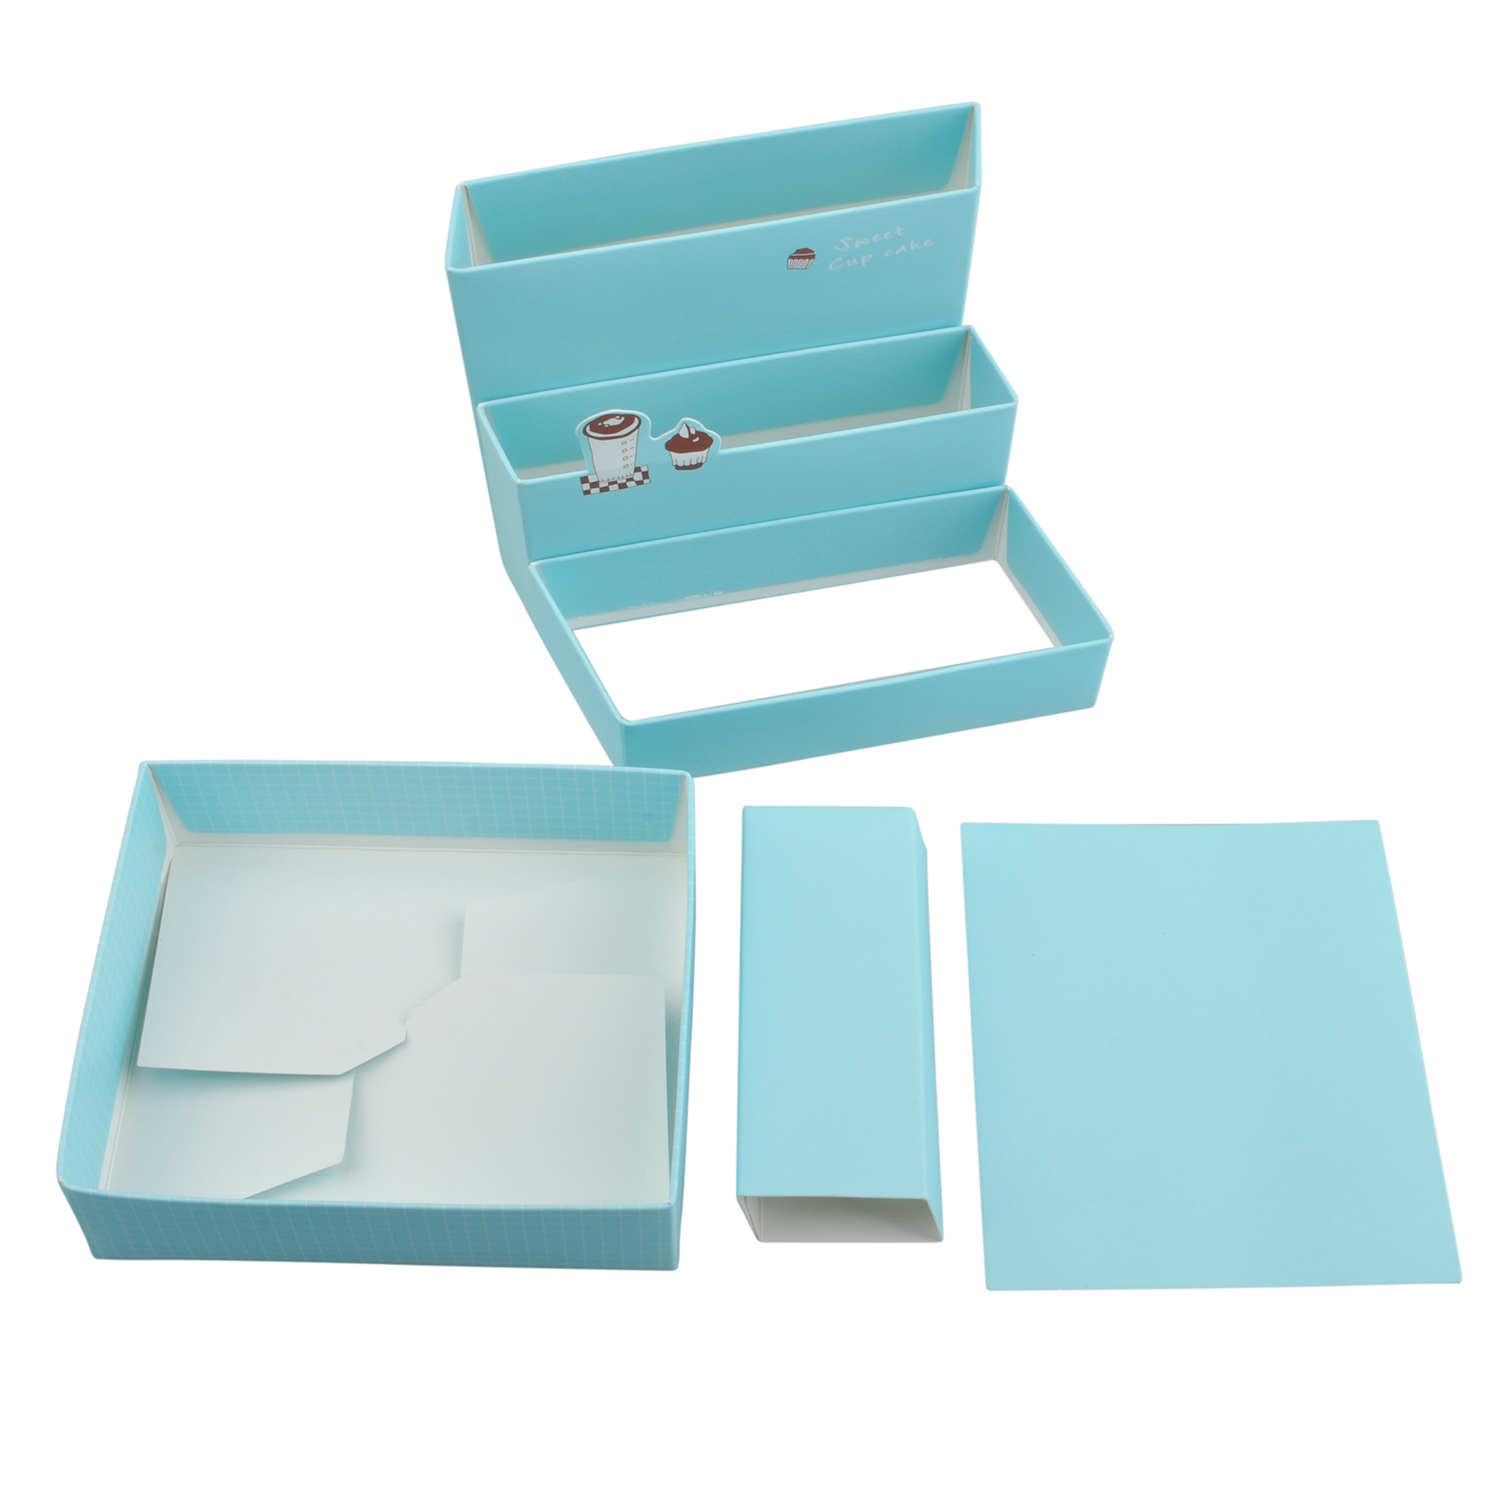 Desk Organiser Stationery Diy Paper Board Storage Box Desk Organizer Stationery